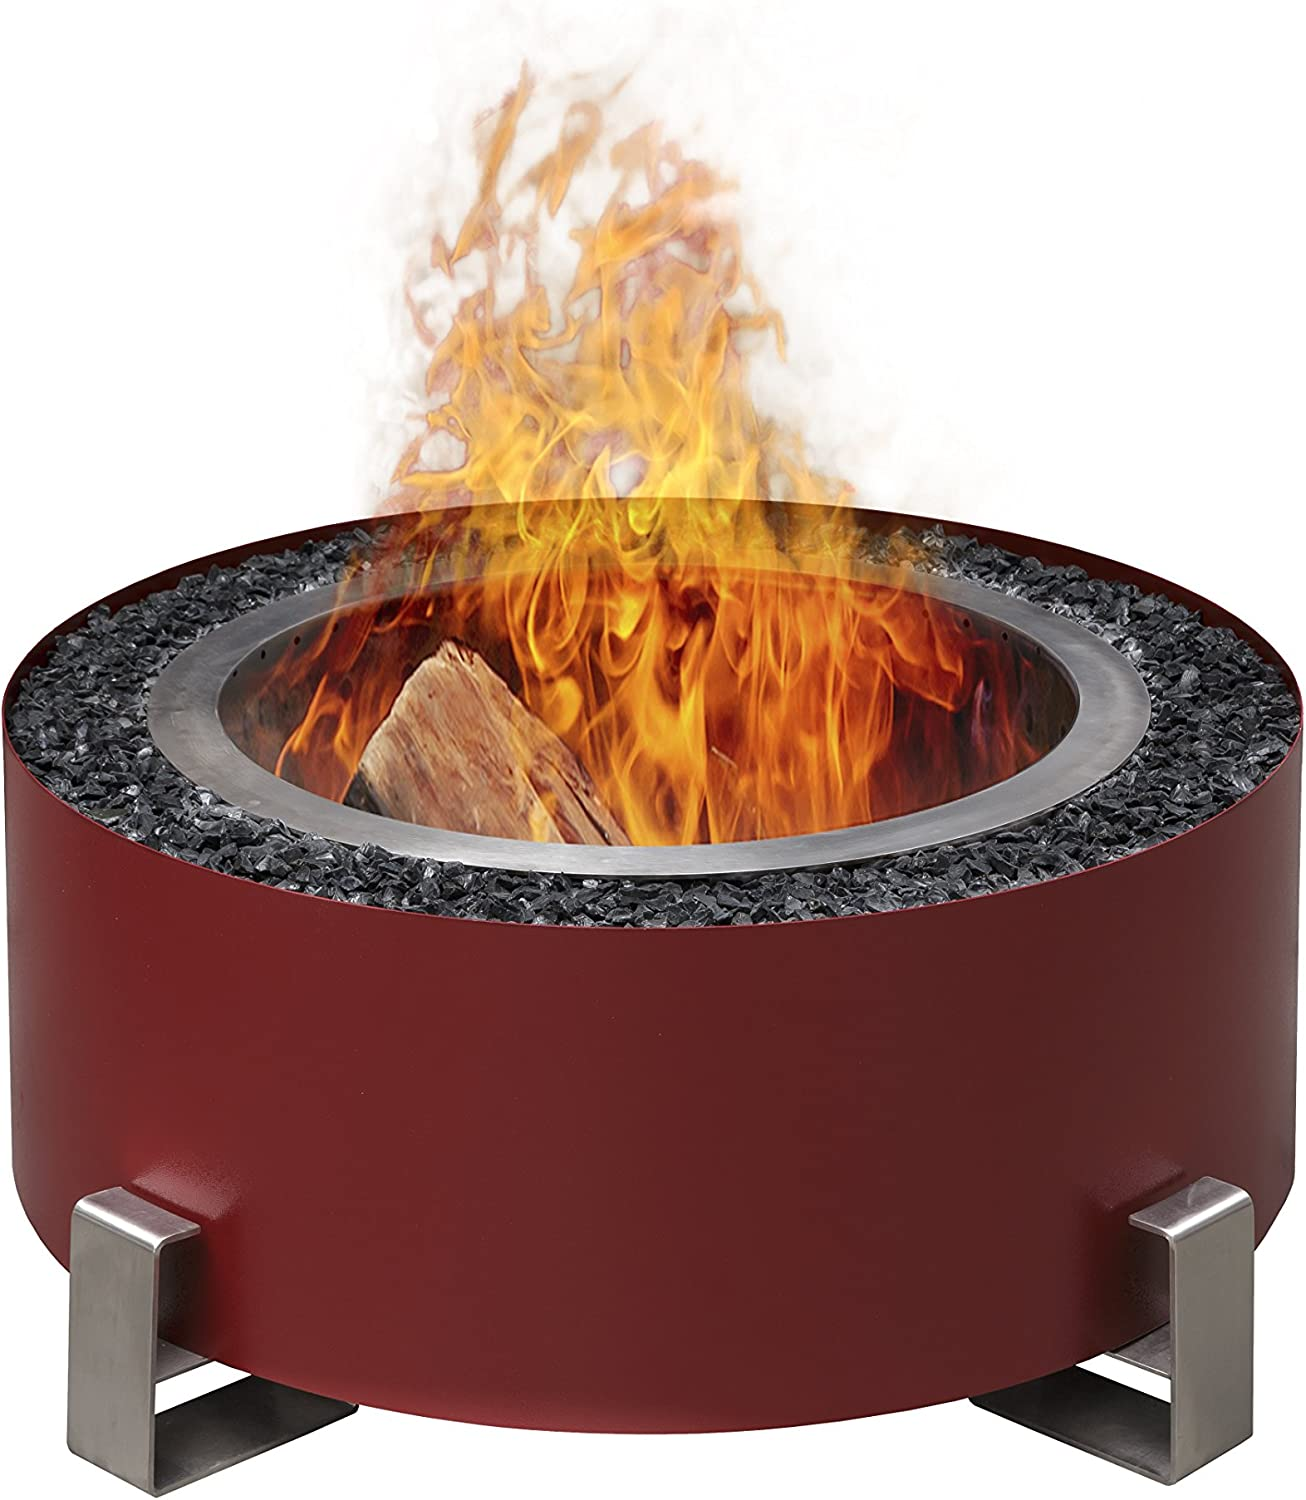 Luxeve The Patio Fire Pit Smoke Reducing Made From 304 Stainless Steel And Built In America Wall Color Red Glass Color Amber Brown Amazon Co Uk Garden Outdoors